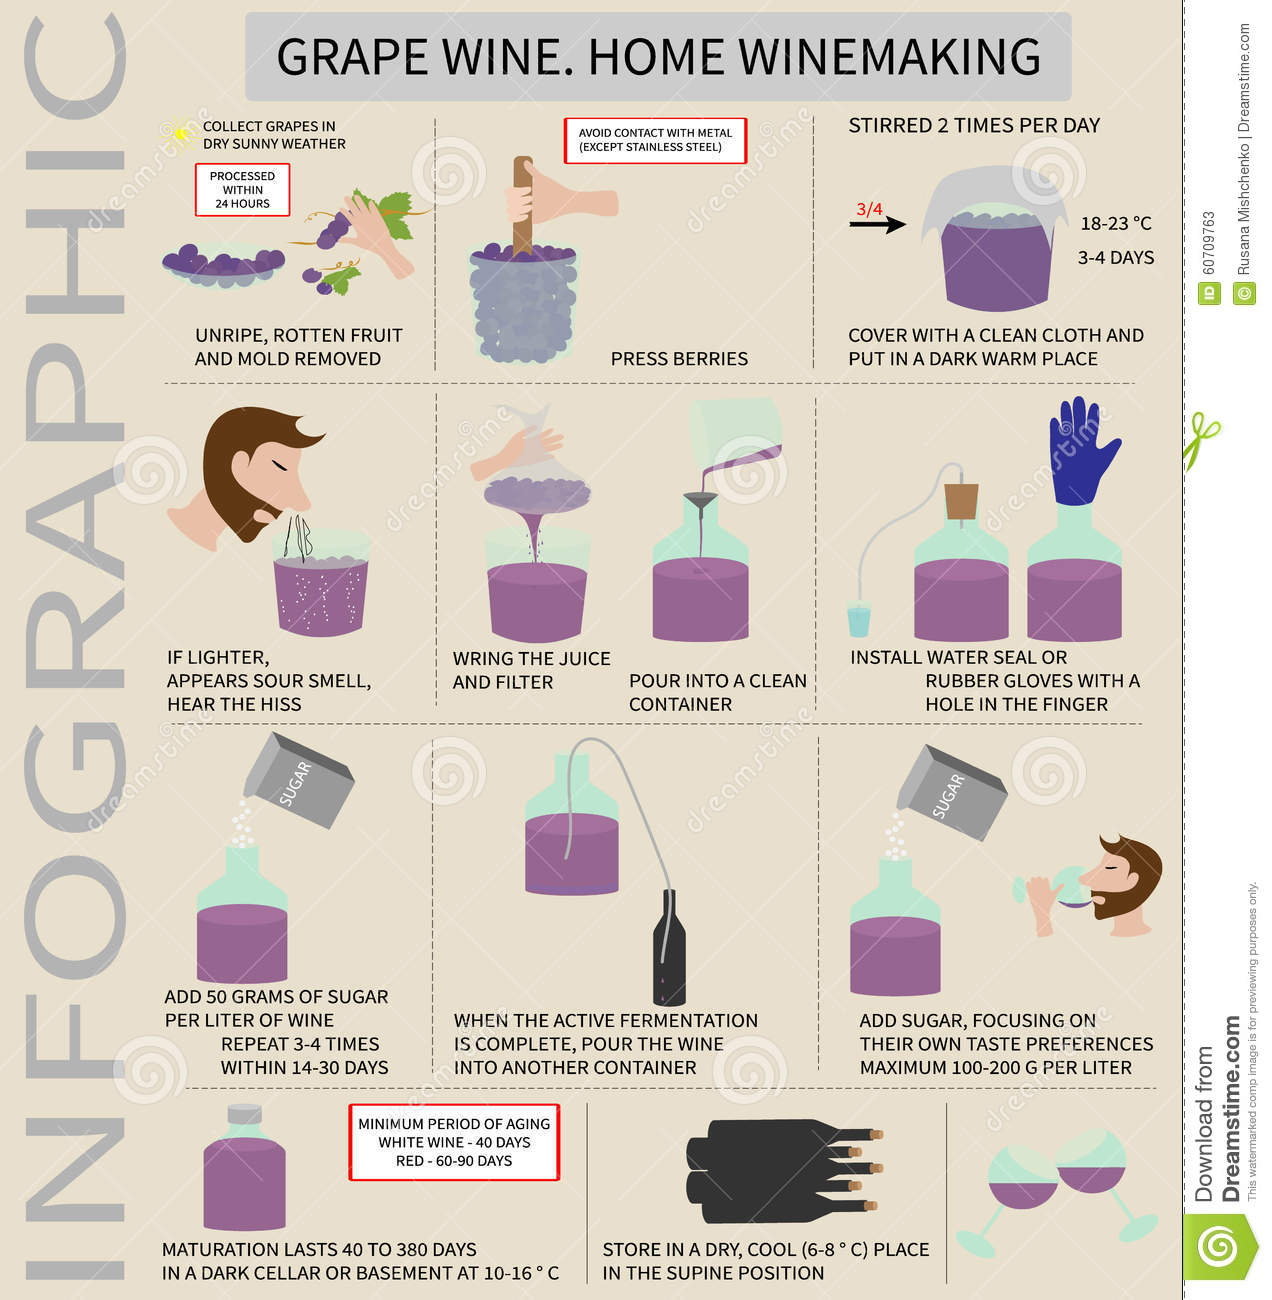 how to make wines osrs